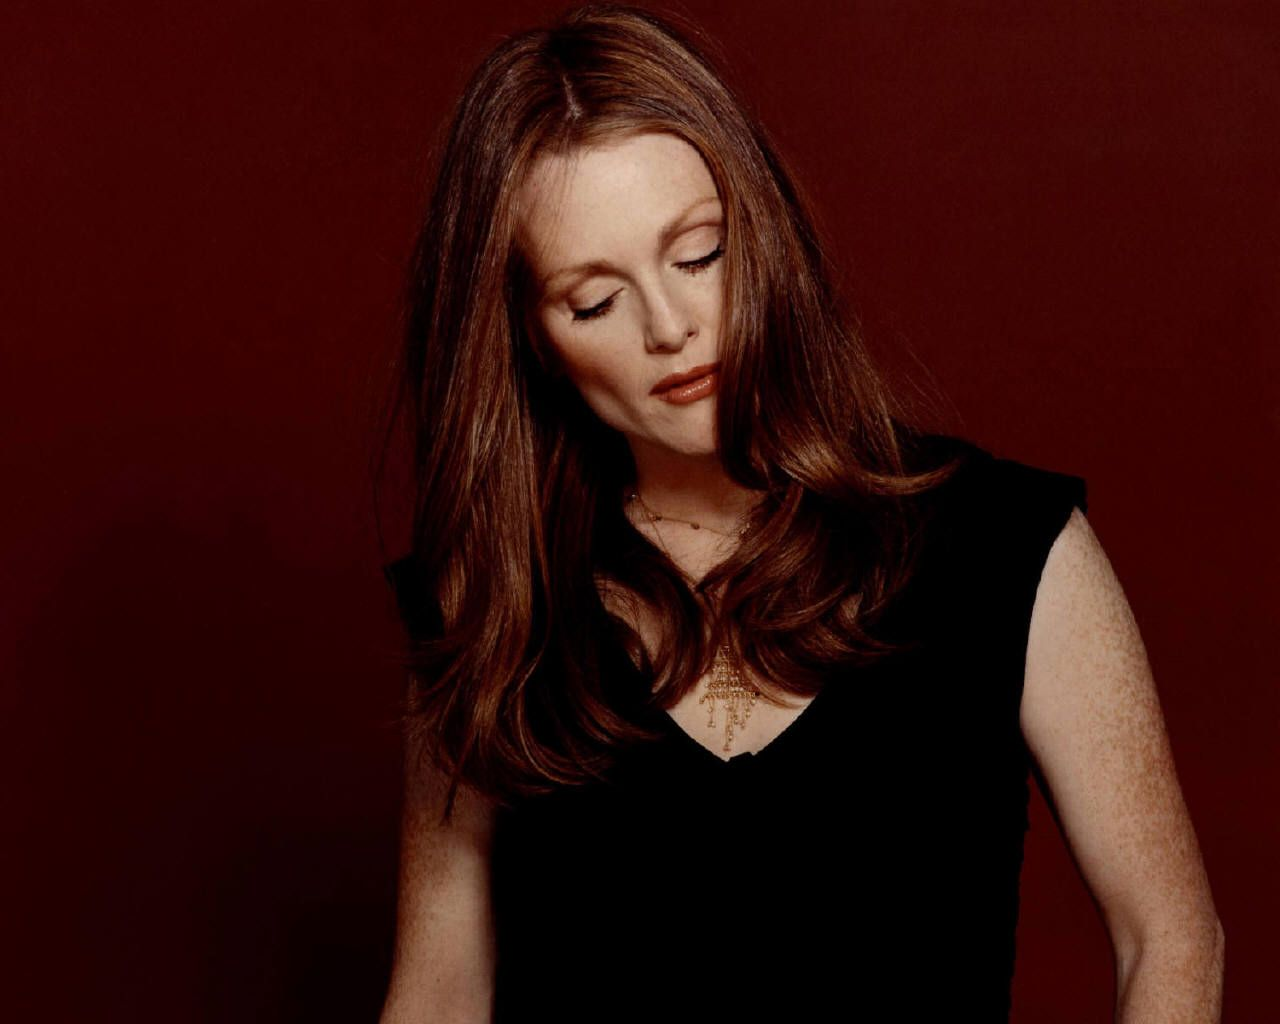 Julianne Moore Beauty Wallpaper